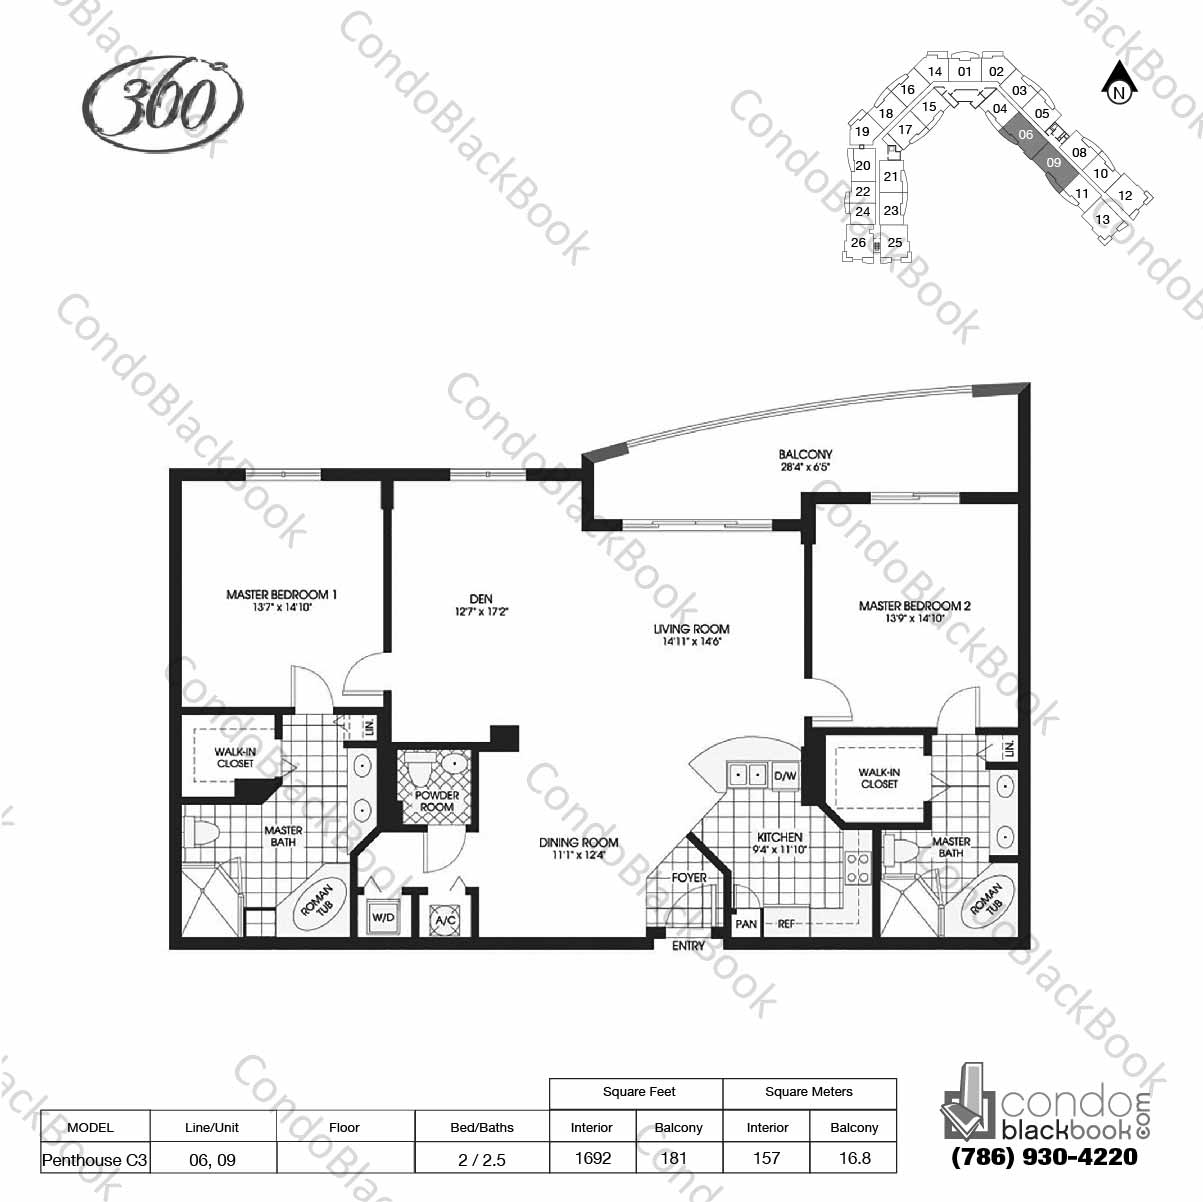 Floor plan for 360 Condo North Bay Village, model Penthouse C3, line 06, 09, 2 / 2.5 bedrooms, 1692 sq ft